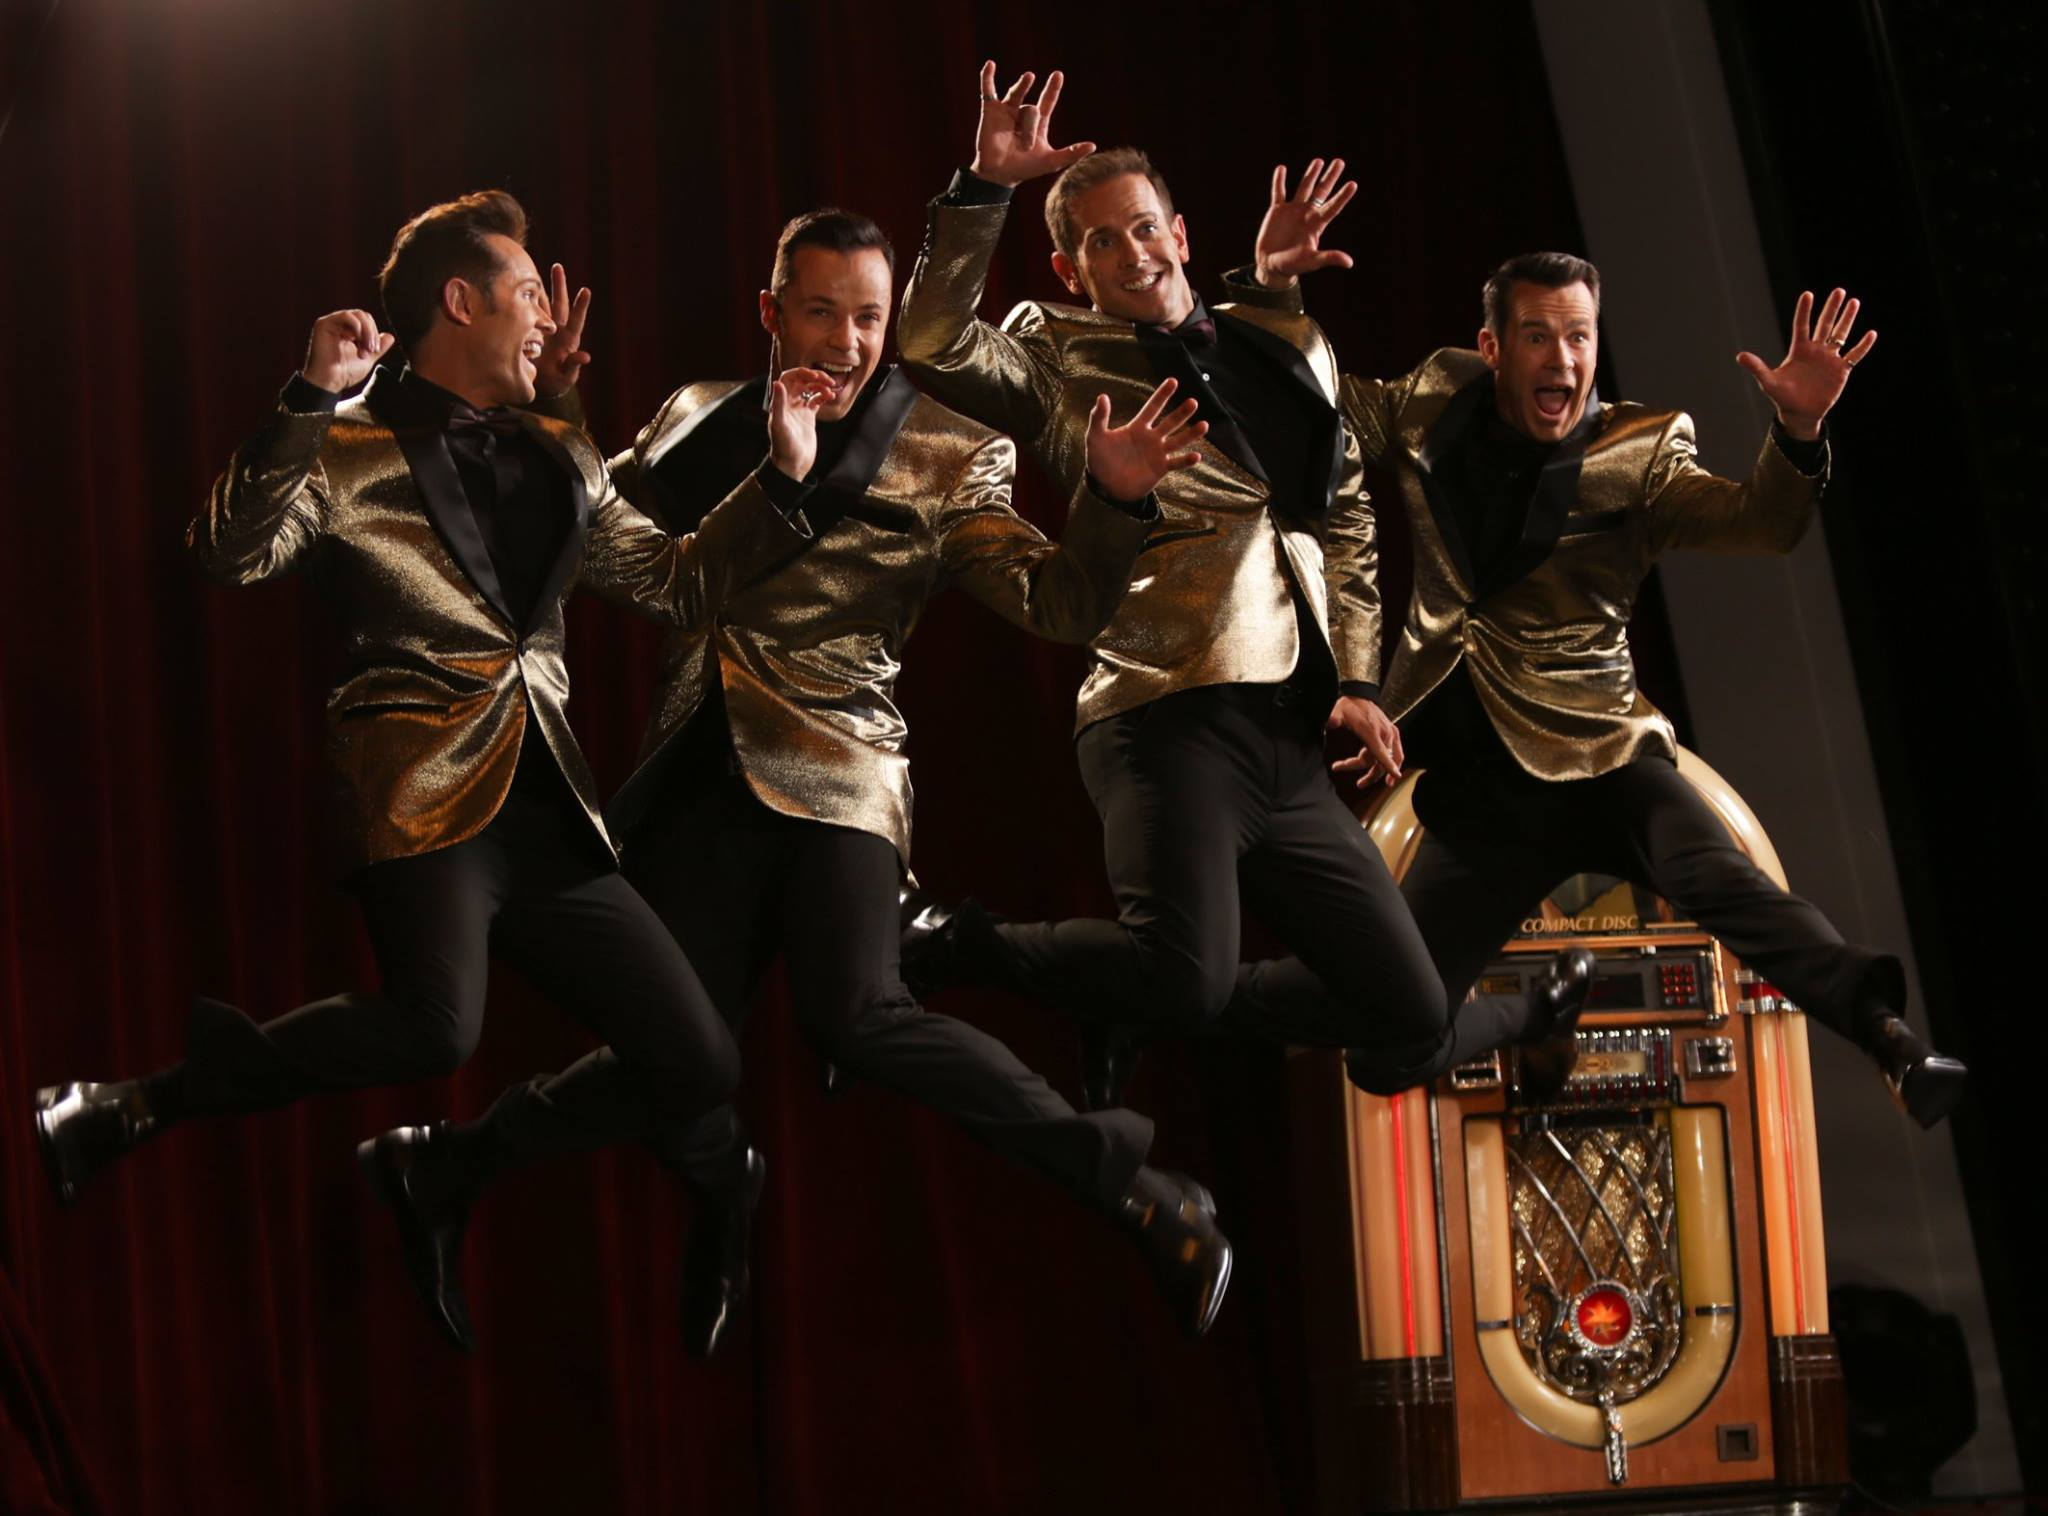 Grab Your Human Nature Jukebox Tickets On Vegaster Today!